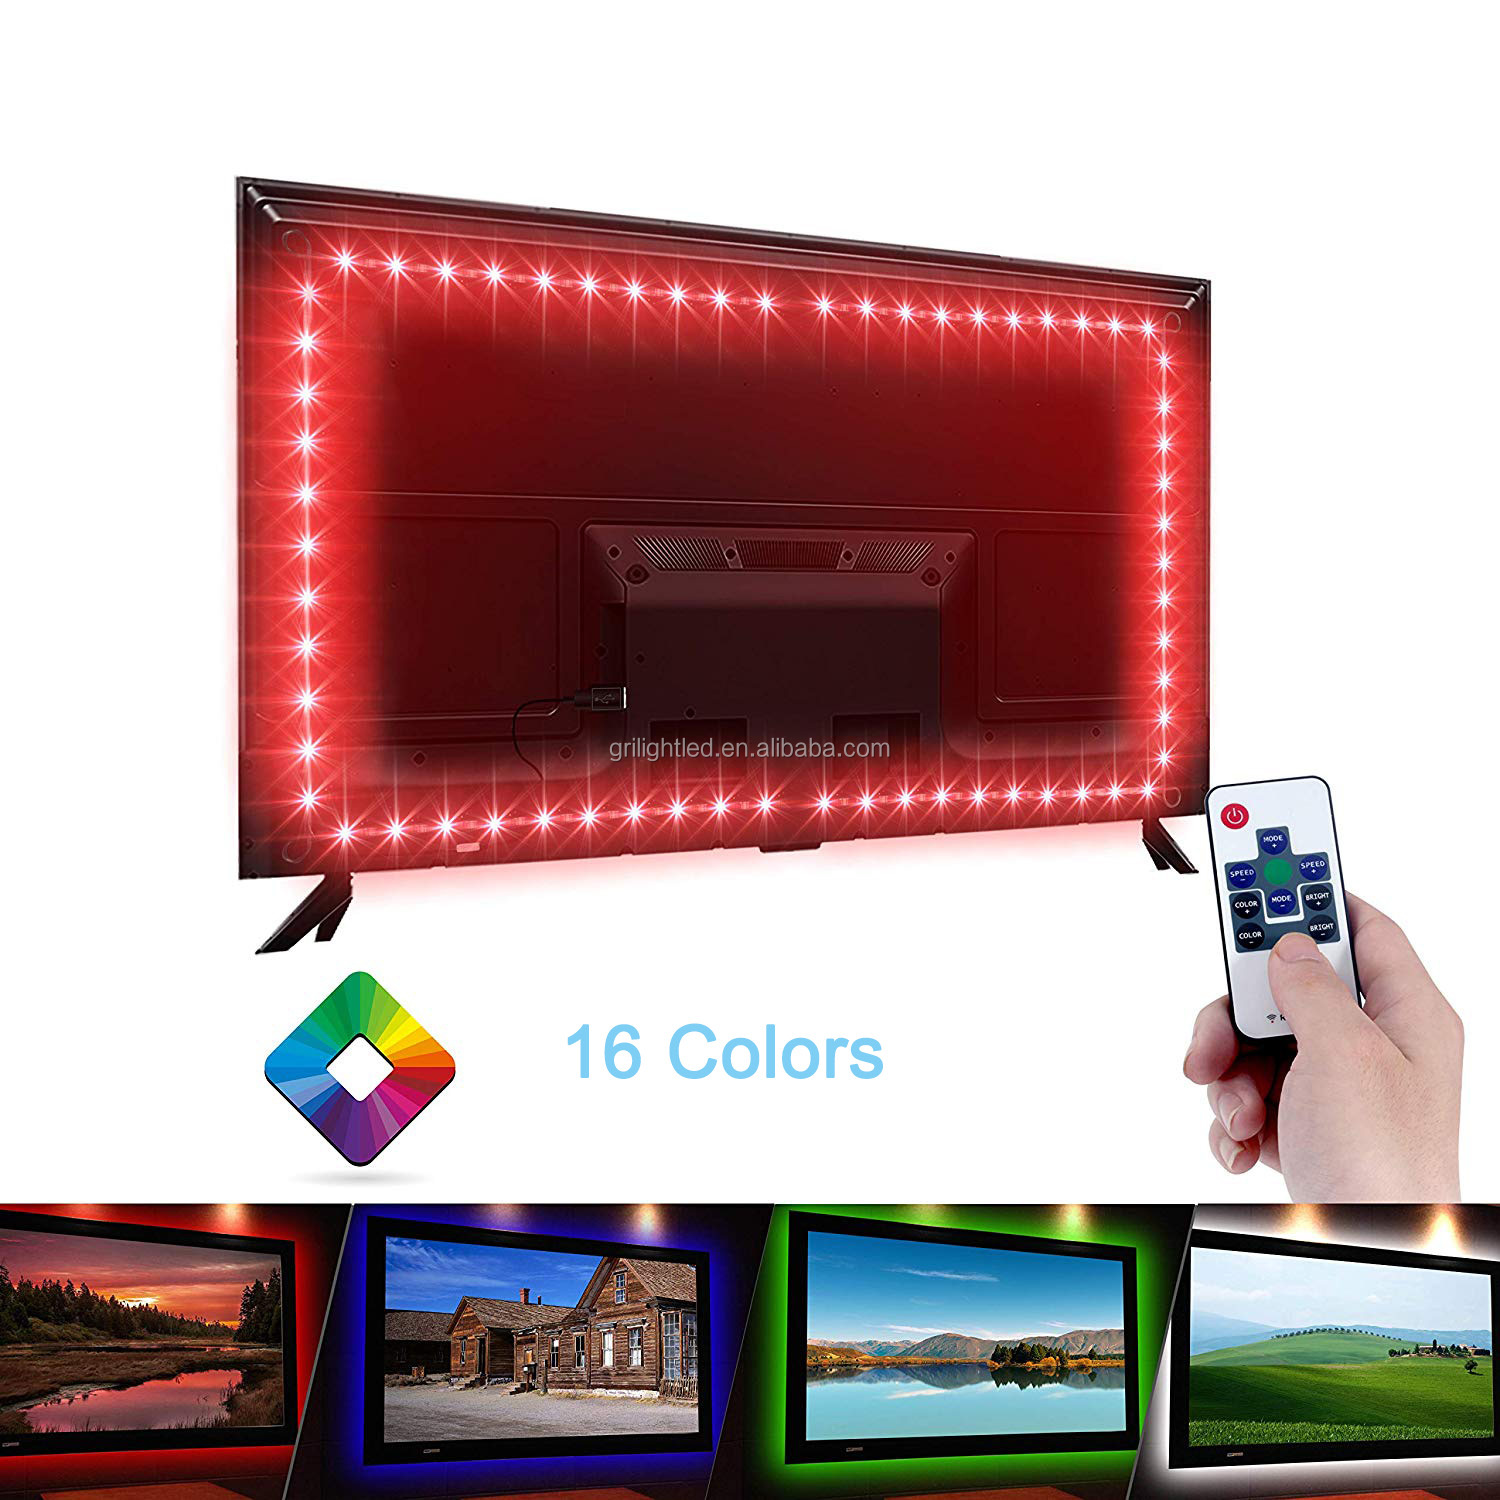 RGB led strip light 5050 flexible TV backlight 5V USB led strip TV led light